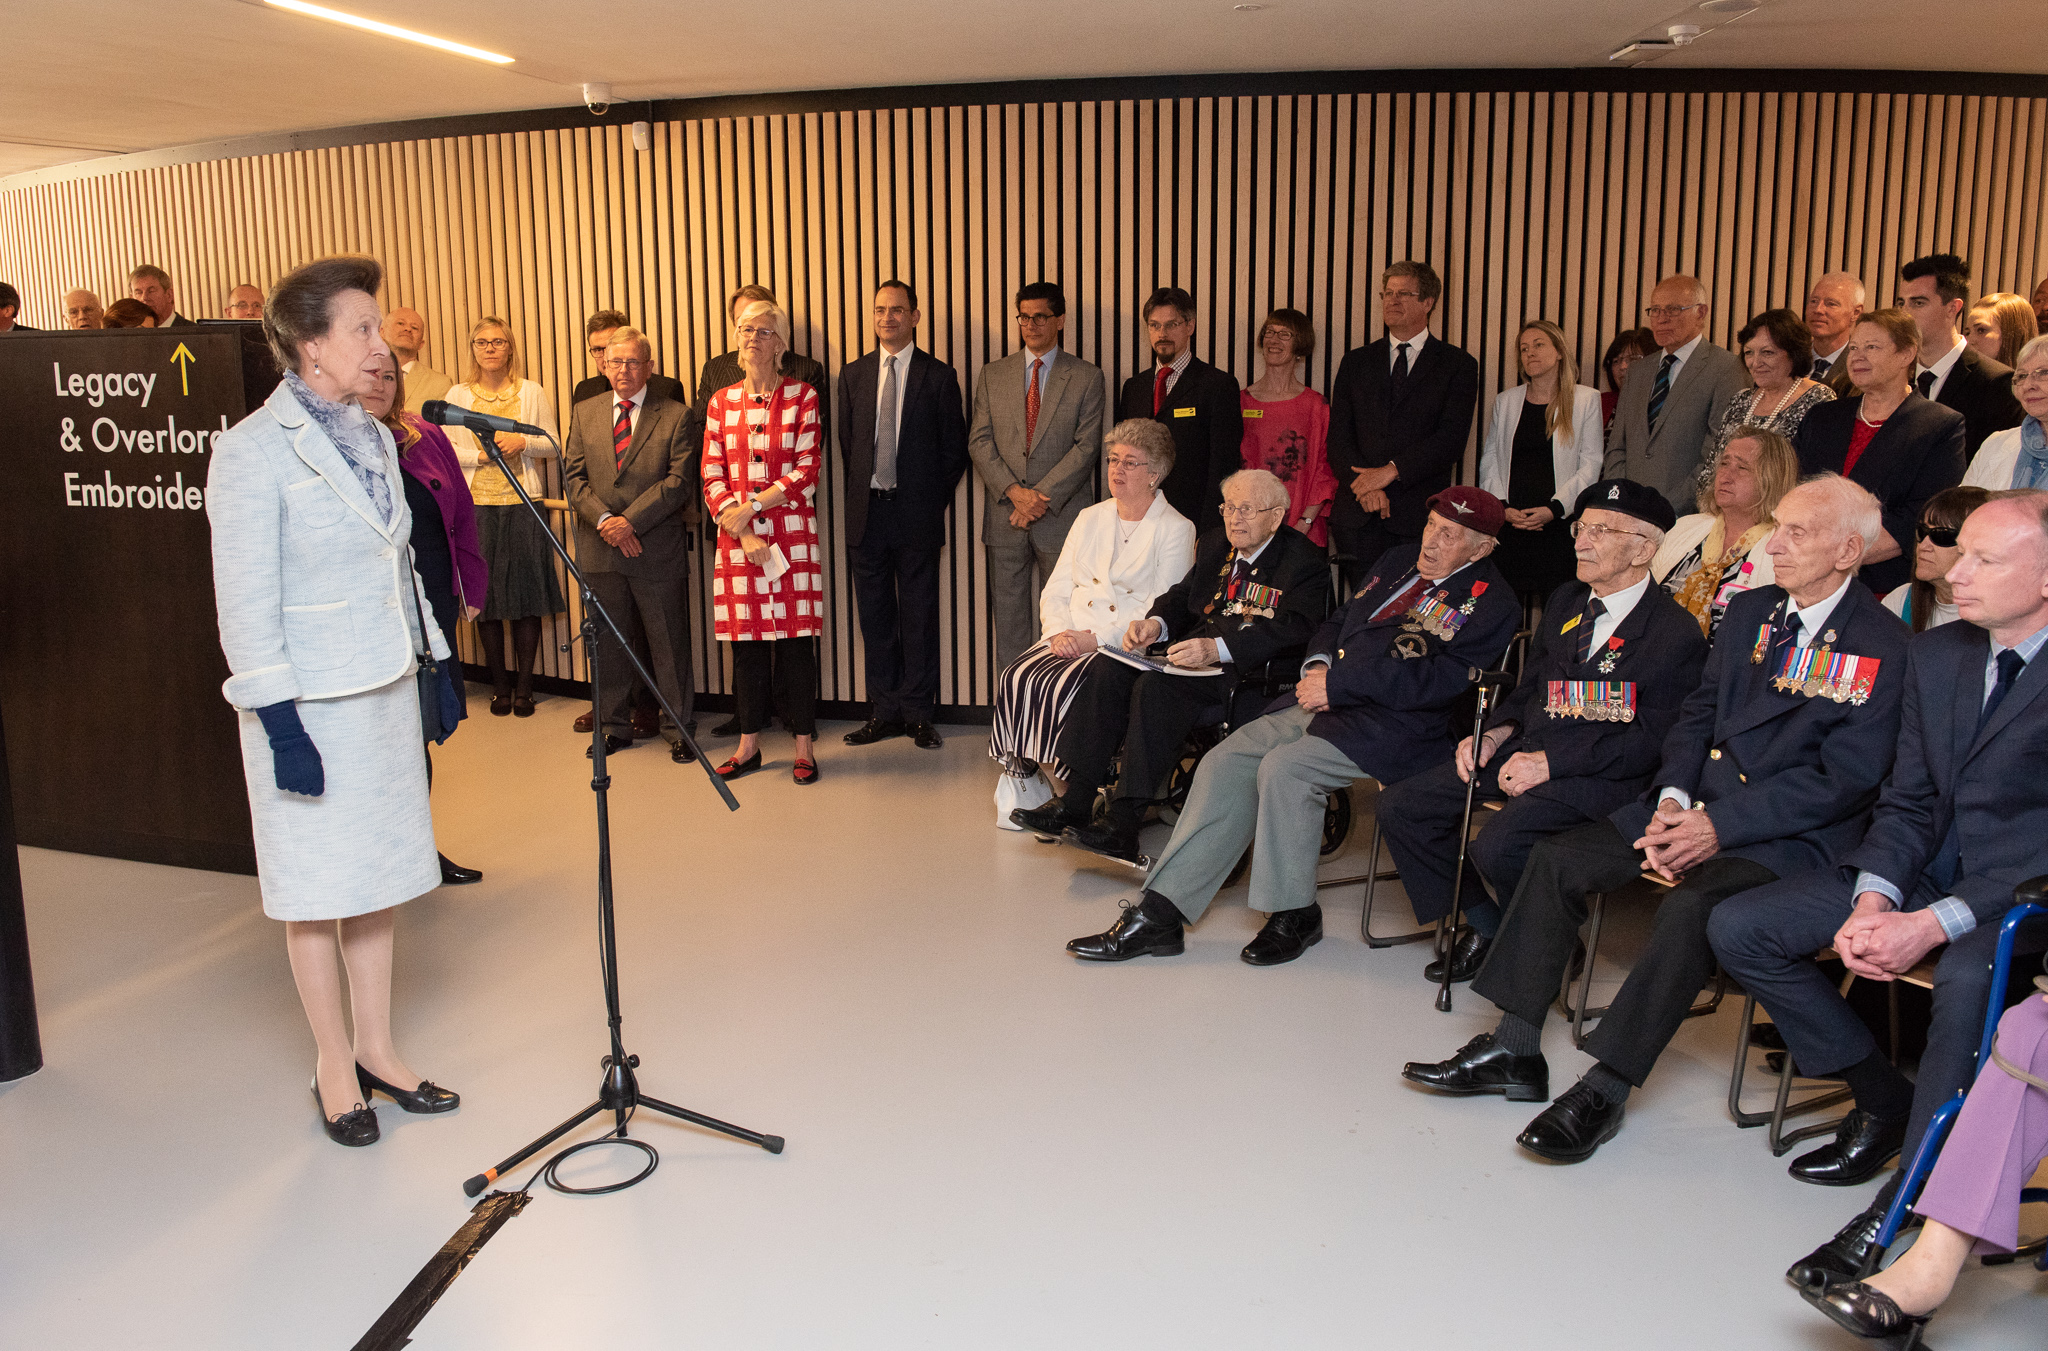 Our museum was opened by HRH The Princess Royal in May 2018